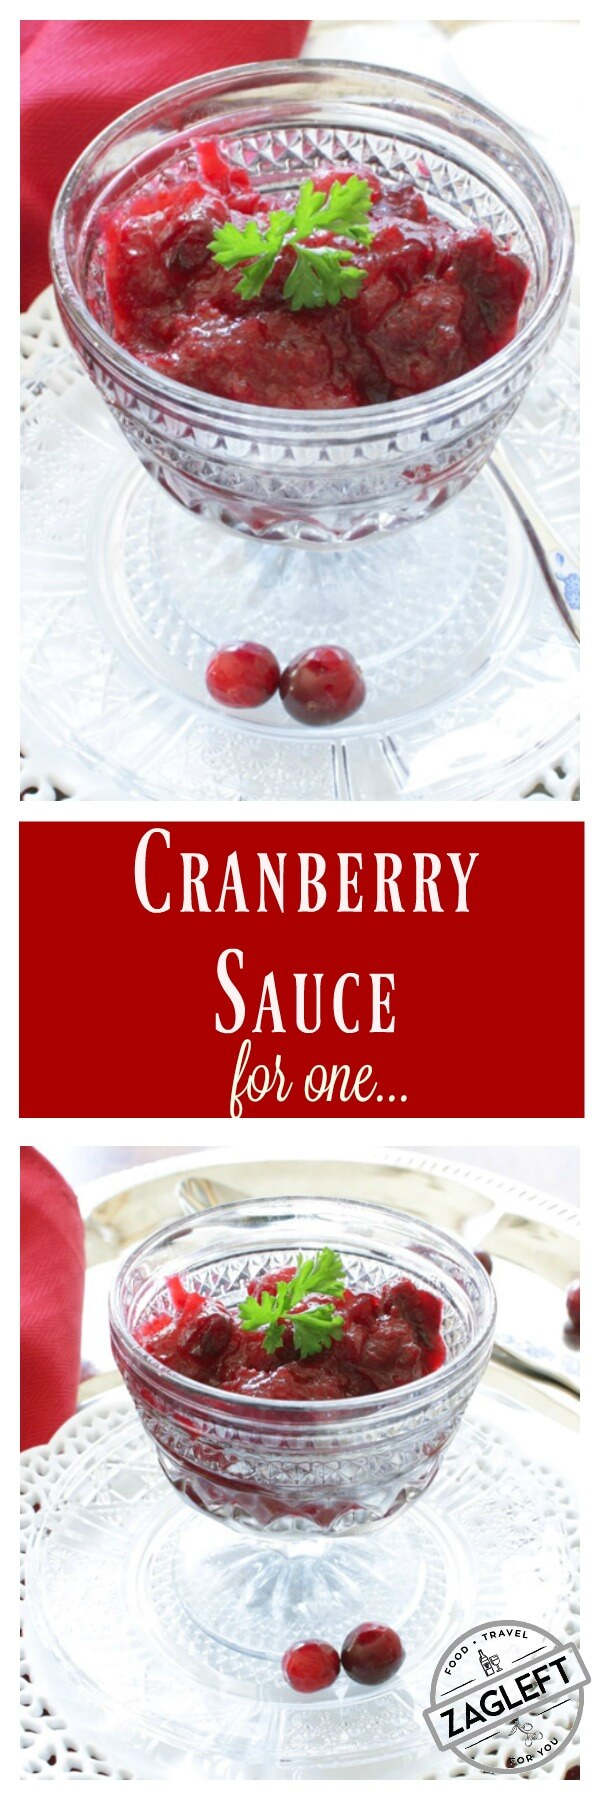 Homemade Cranberry Sauce for One made with a few simple ingredients. If you're dining solo this Thanksgiving, be sure to add this simple classic single serving side dish to your holiday menu. | One Dish Kitchen